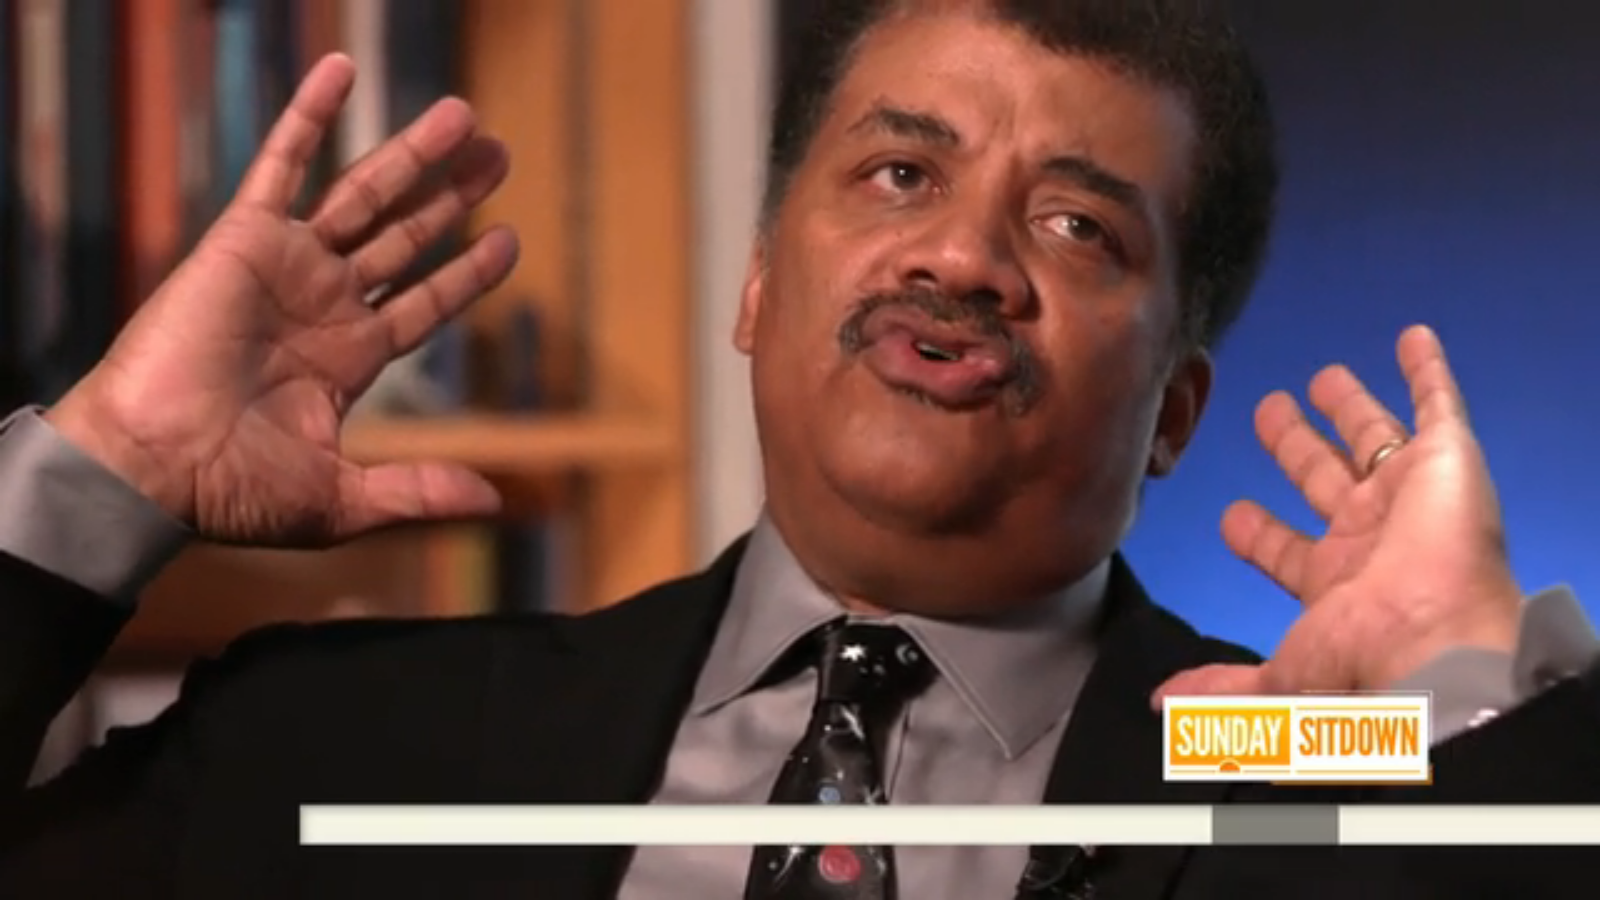 Neil DeGrasse Tyson: What If We Just Turned the Hurricanes Into Electricity